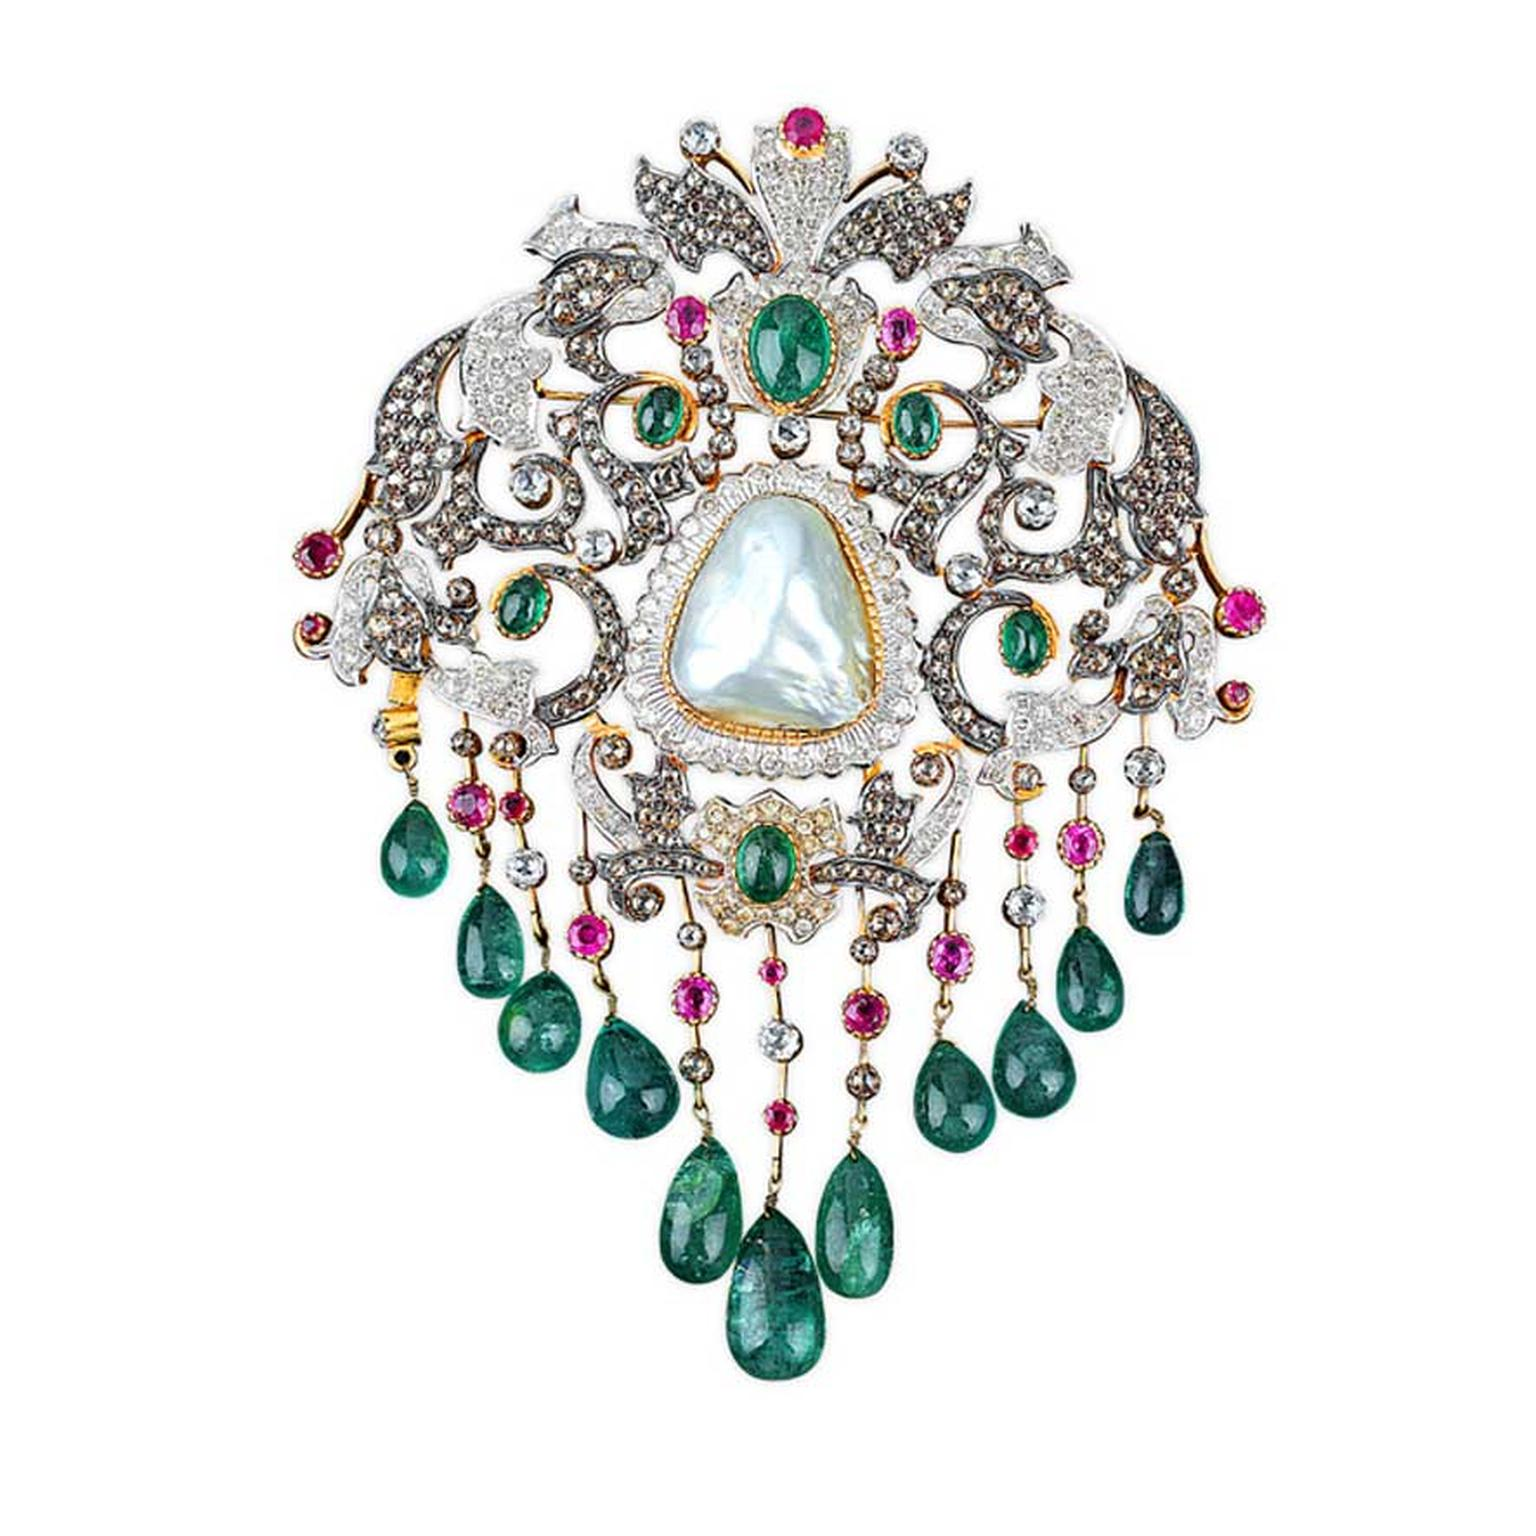 Golecha brooch studded with diamonds, rubies, emeralds and a large central pearl.